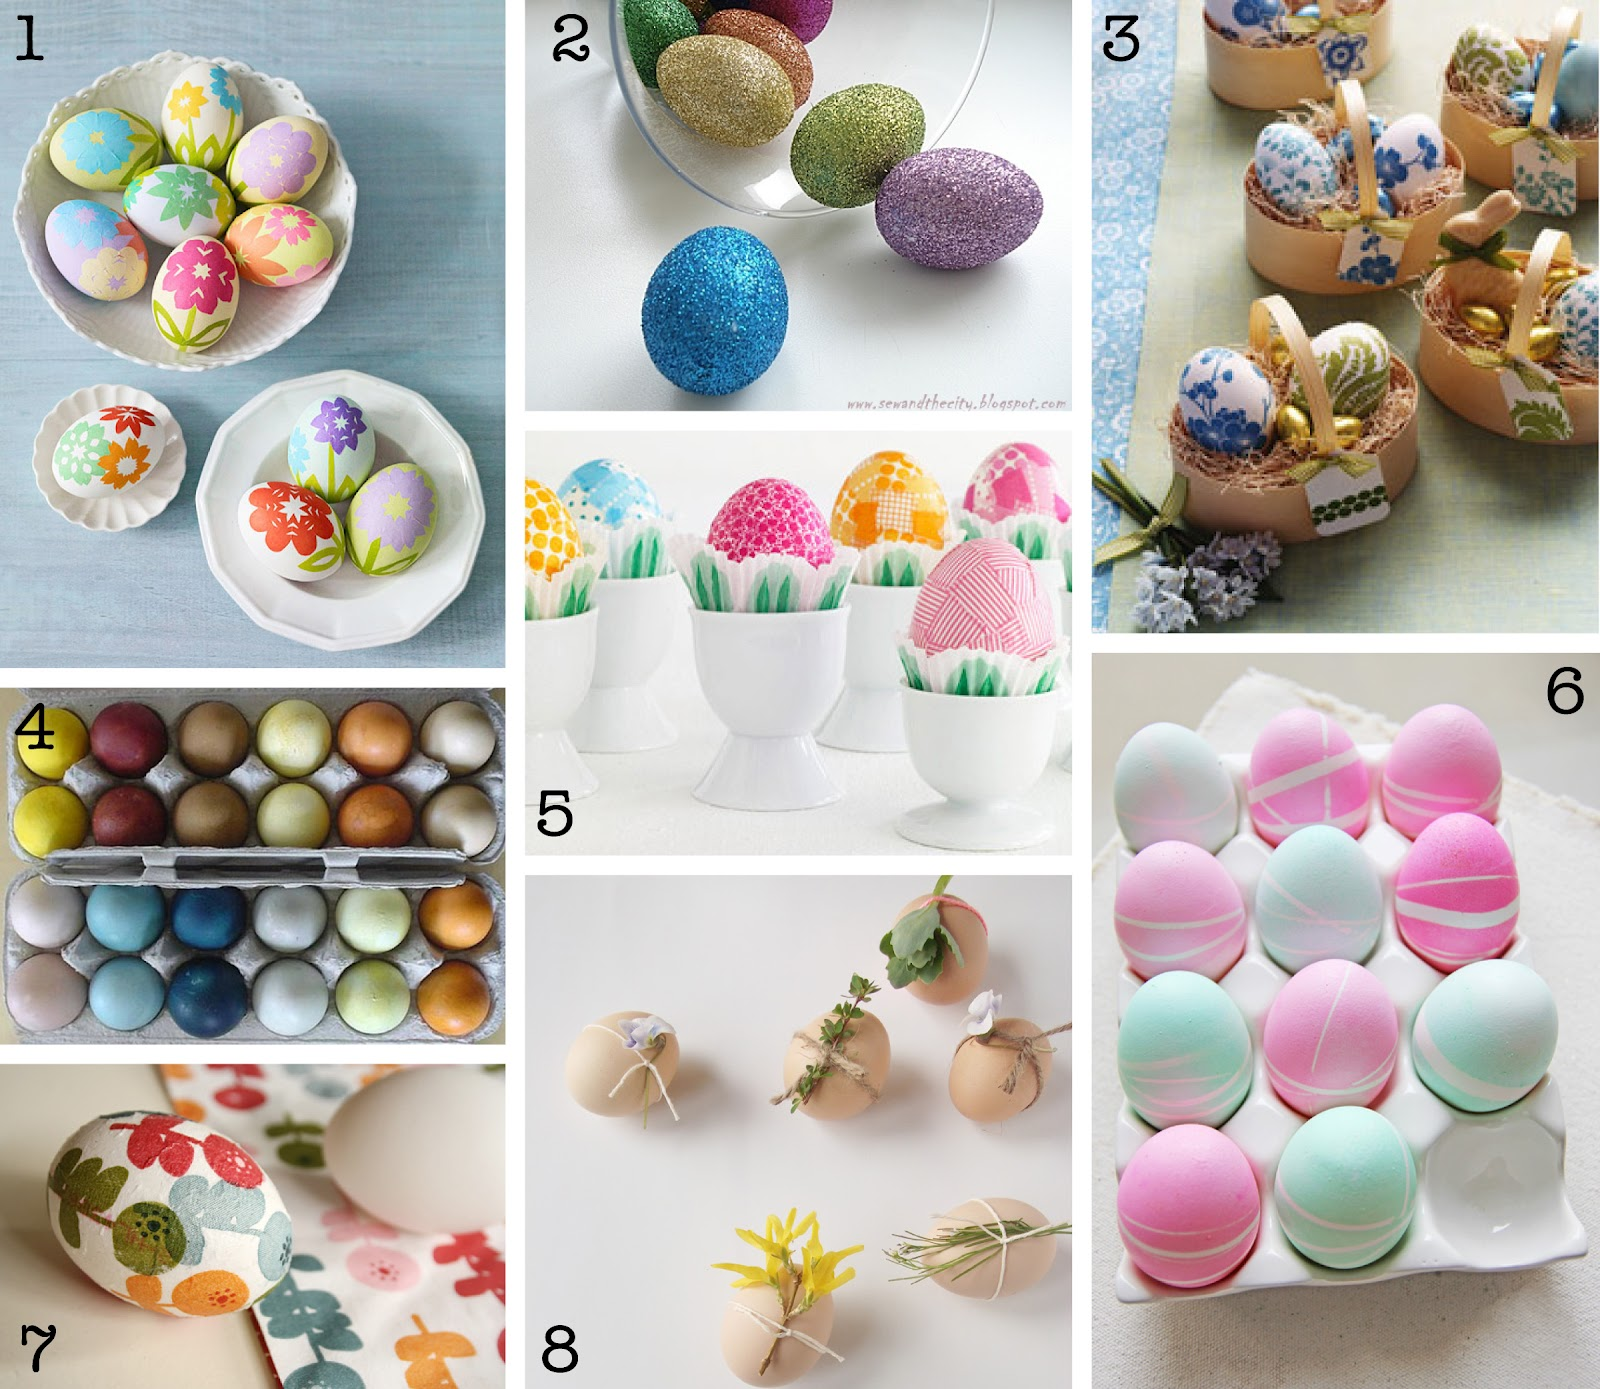 Diy Easter Decorating Ideas: The Creative Place: DIY :: Easter Egg Decorating Roundup